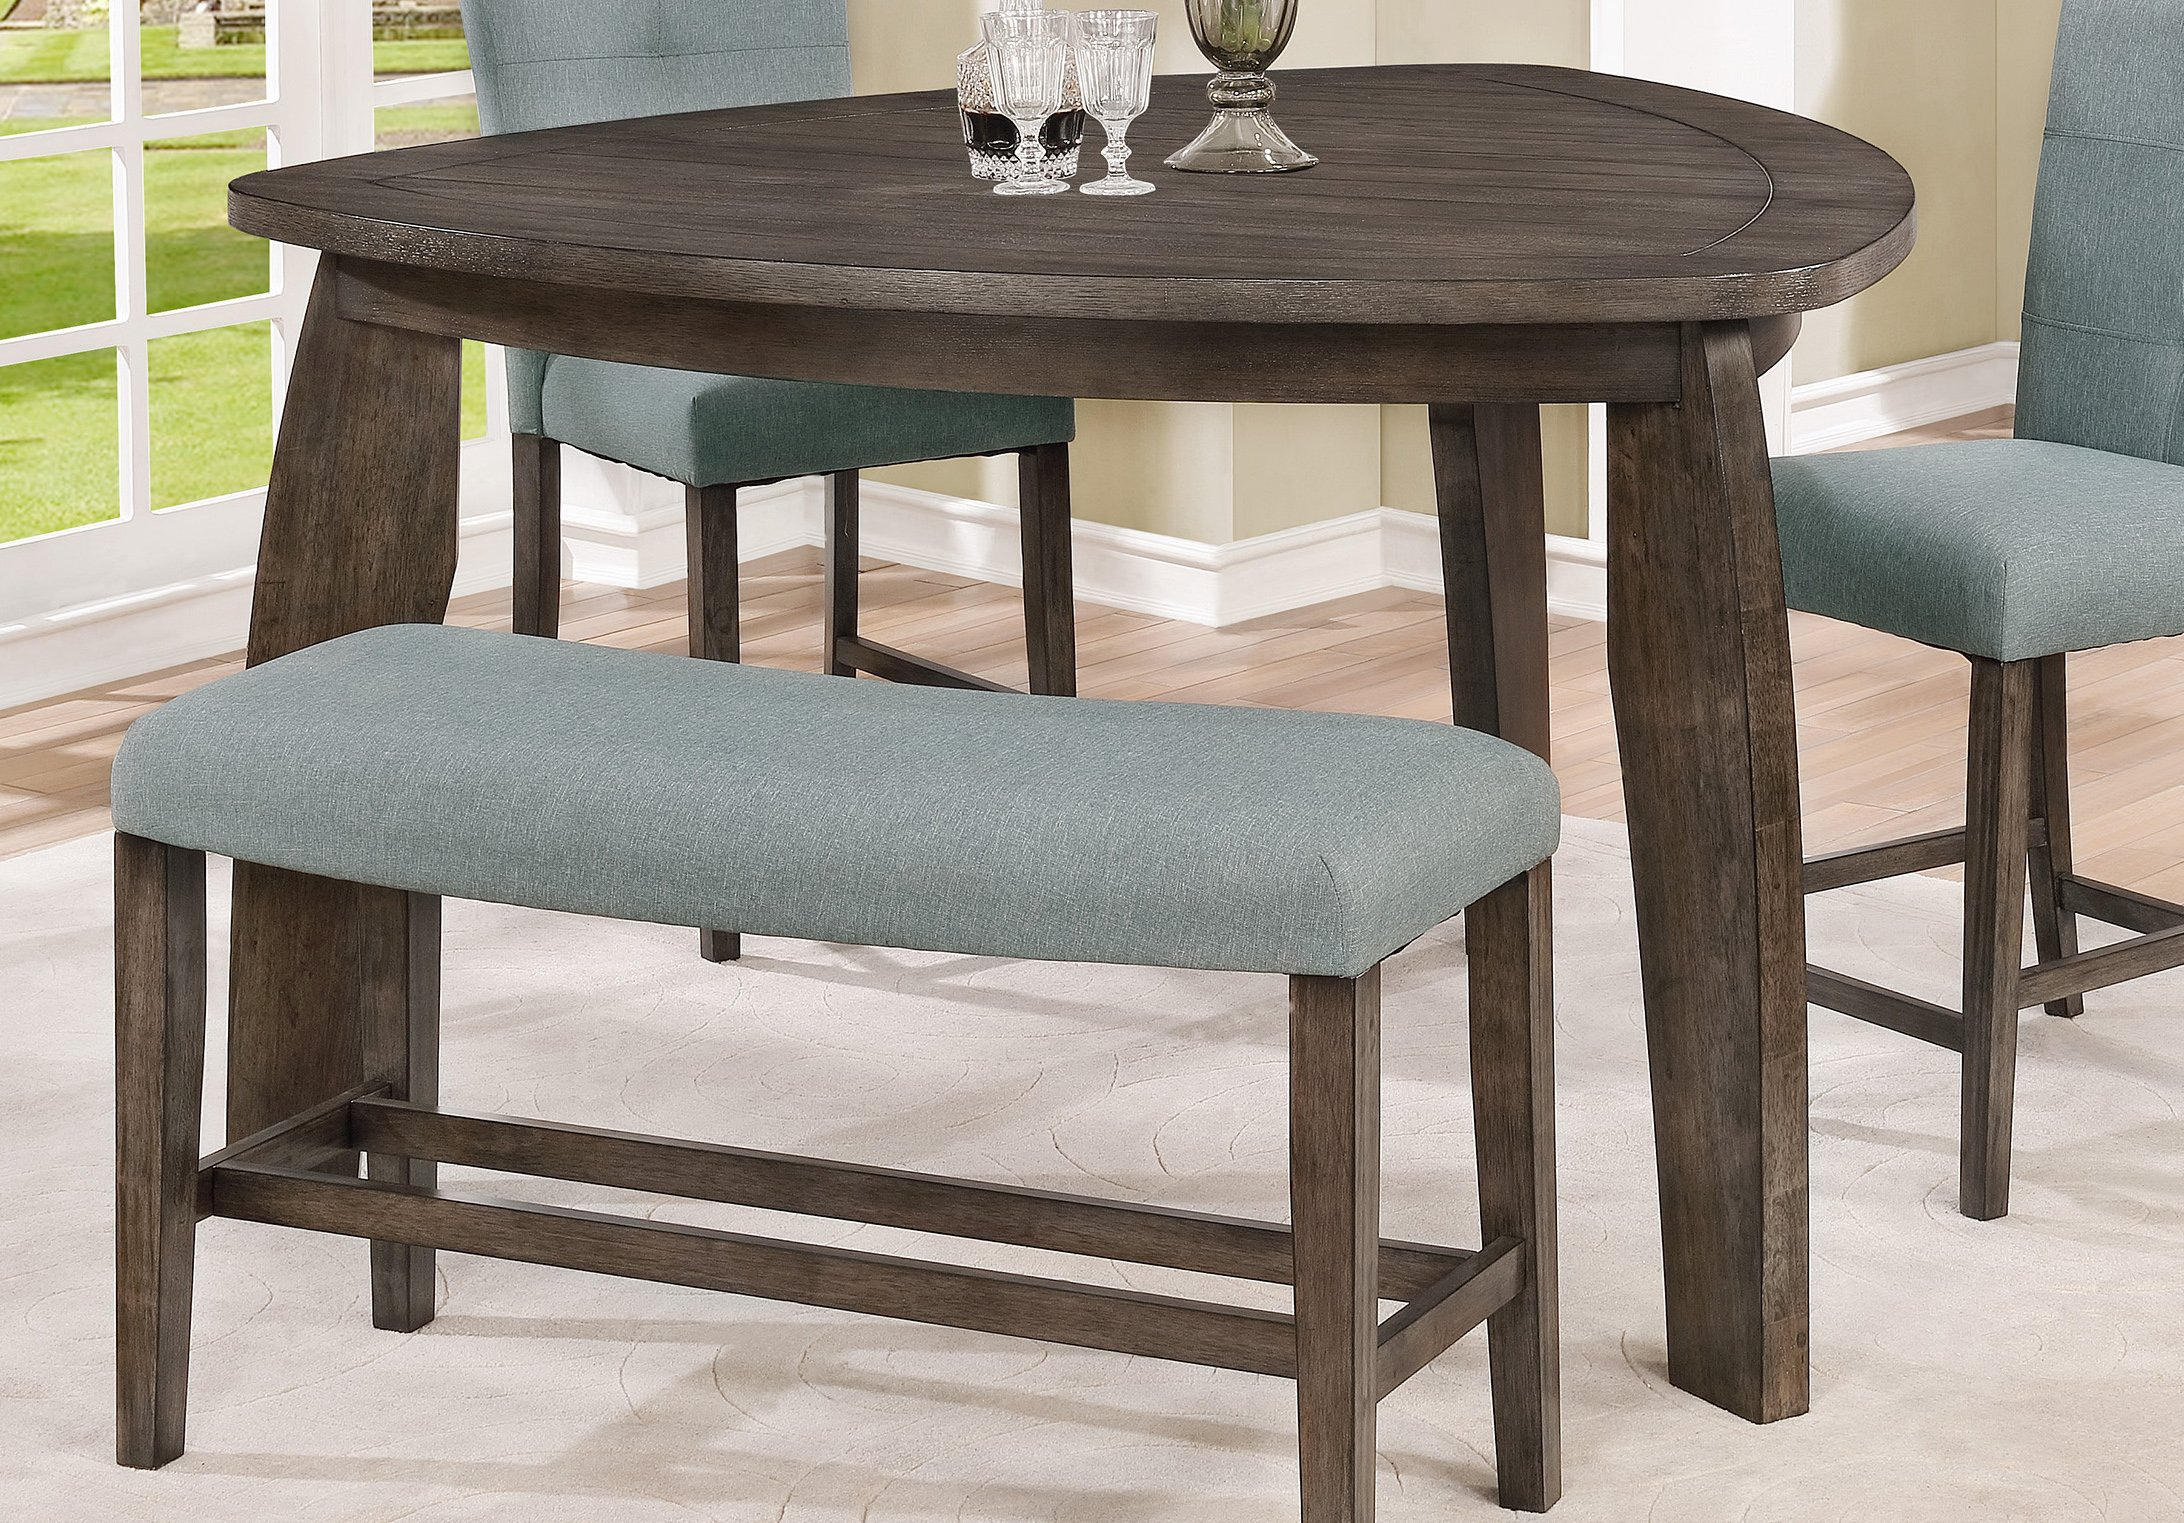 Gray 4 Piece Counter Height Tri Table Dining Set – Hollis For Best And Newest Hearne Counter Height Dining Tables (View 10 of 15)